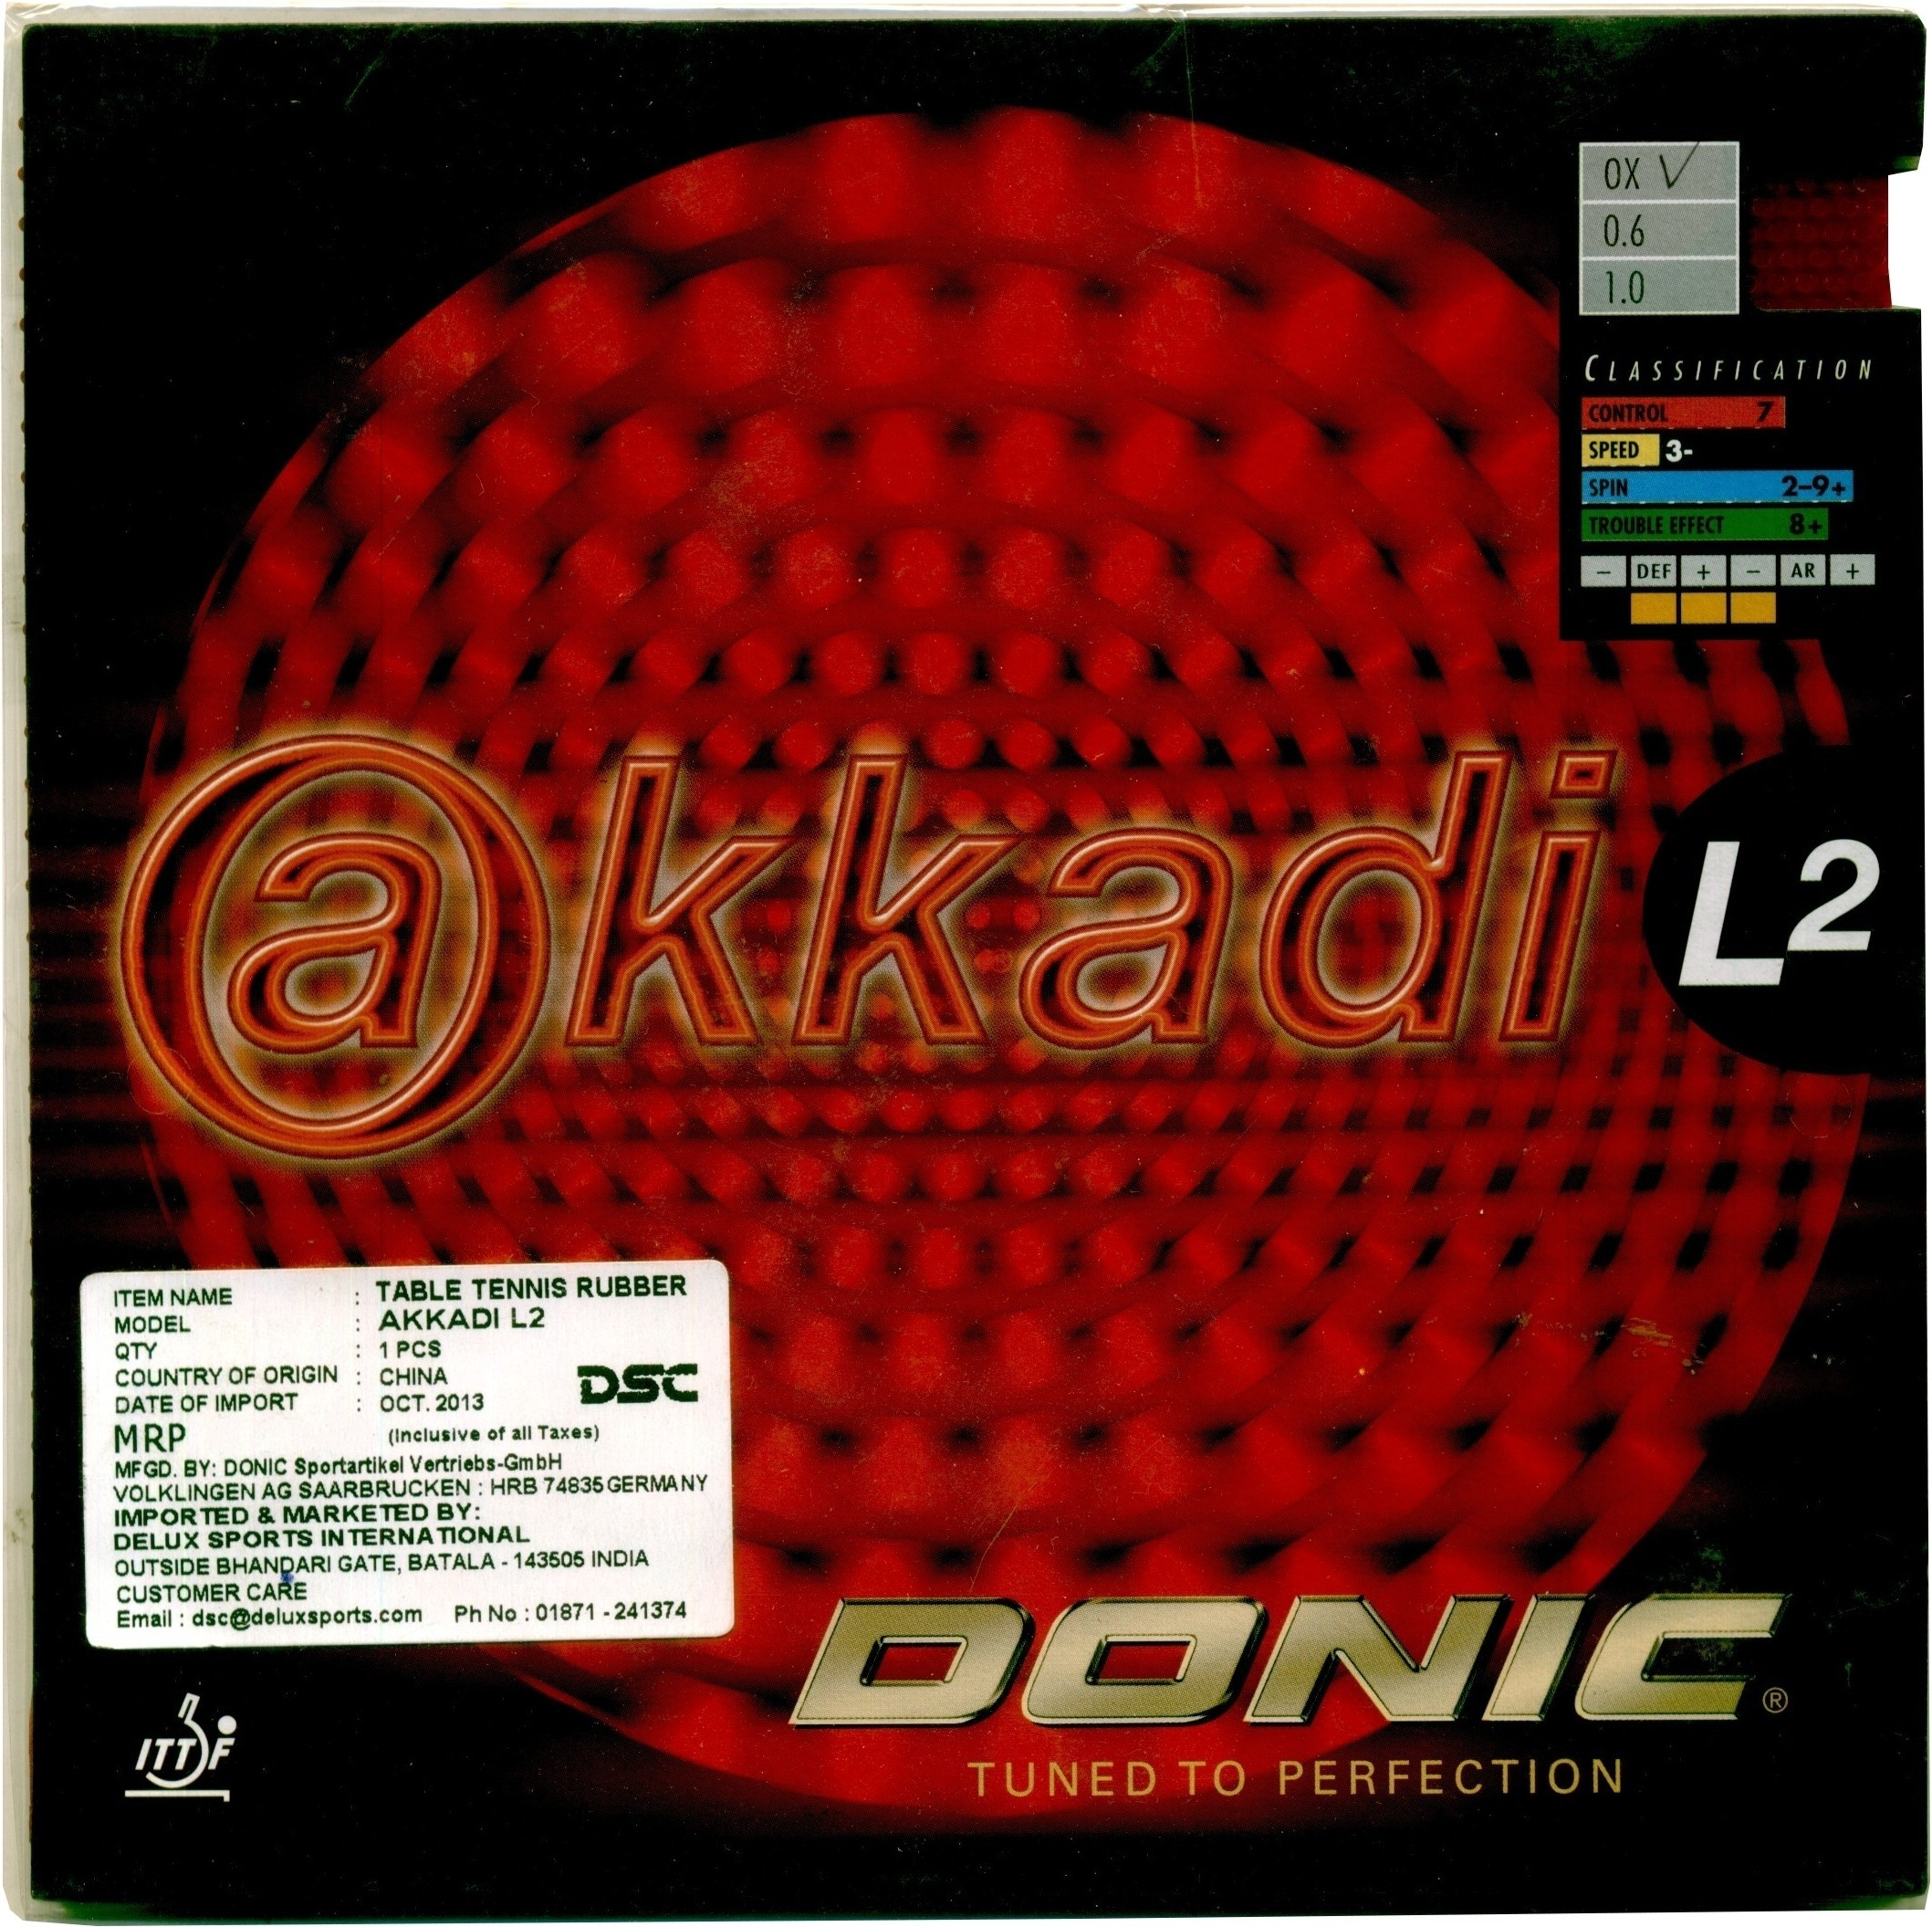 Donic Akkadi L2 (OX) Table Tennis Rubber.